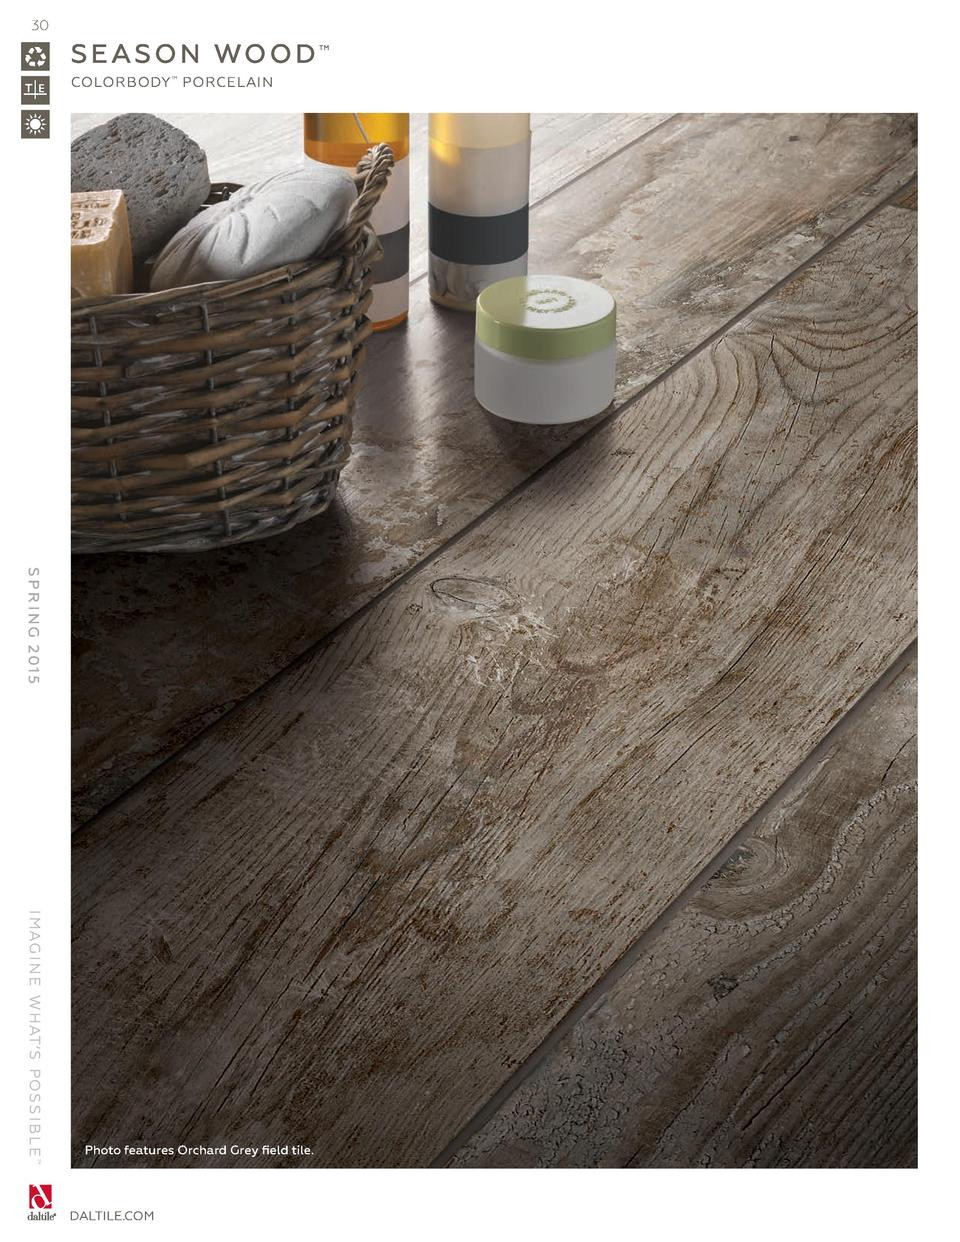 Authentic Hardwood Flooring Albany Ny Of Daltile Spring 2015 Catalog Simplebooklet Com Throughout 30 S E A S O N Wo O D Colorbody Porcelain S P R I N G 2 01 5 I Mag I N E W Hat S Po